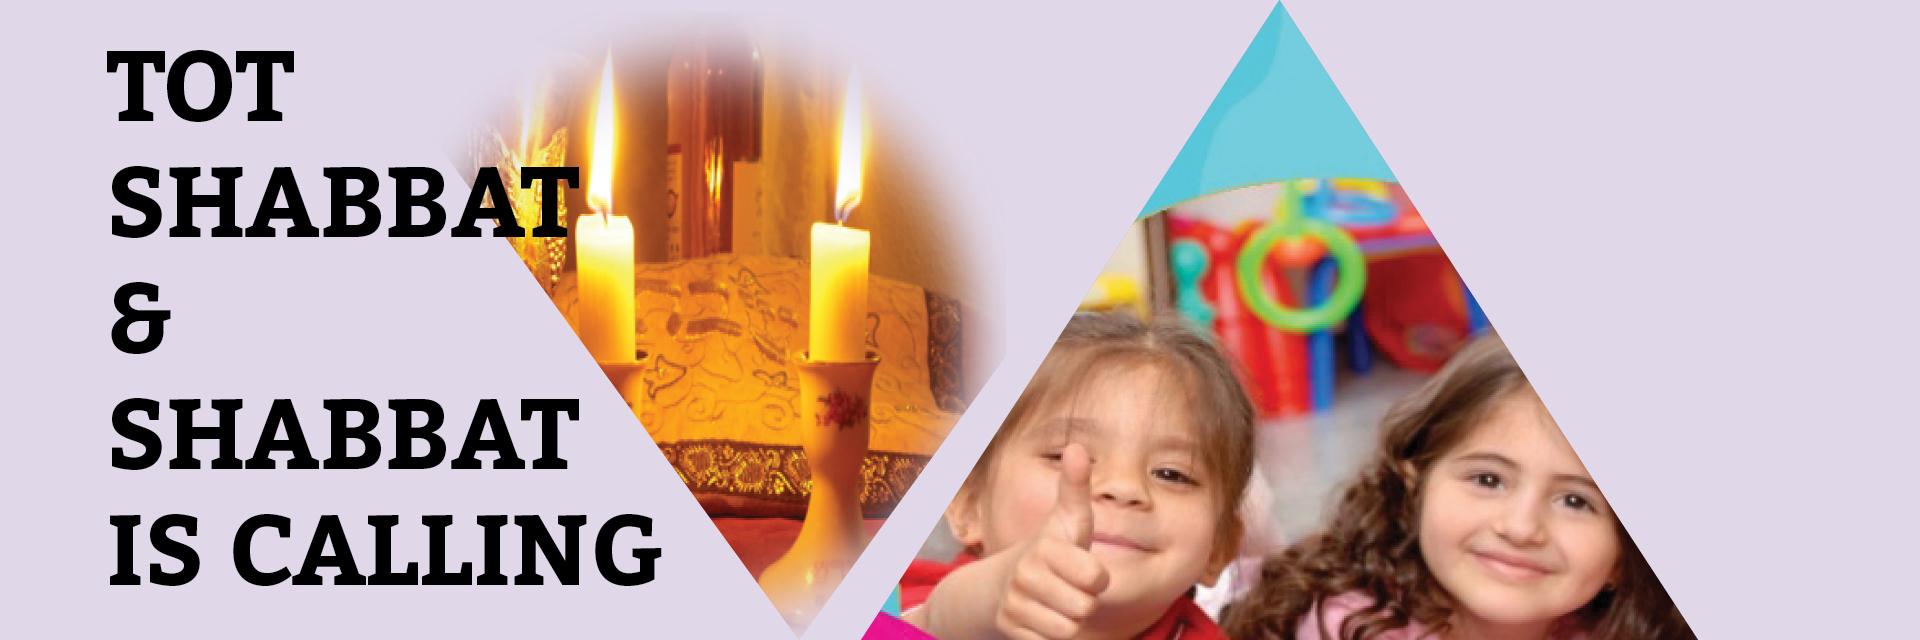 "<a href=""https://www.congkti.org/event/shabbat-is-calling.html""